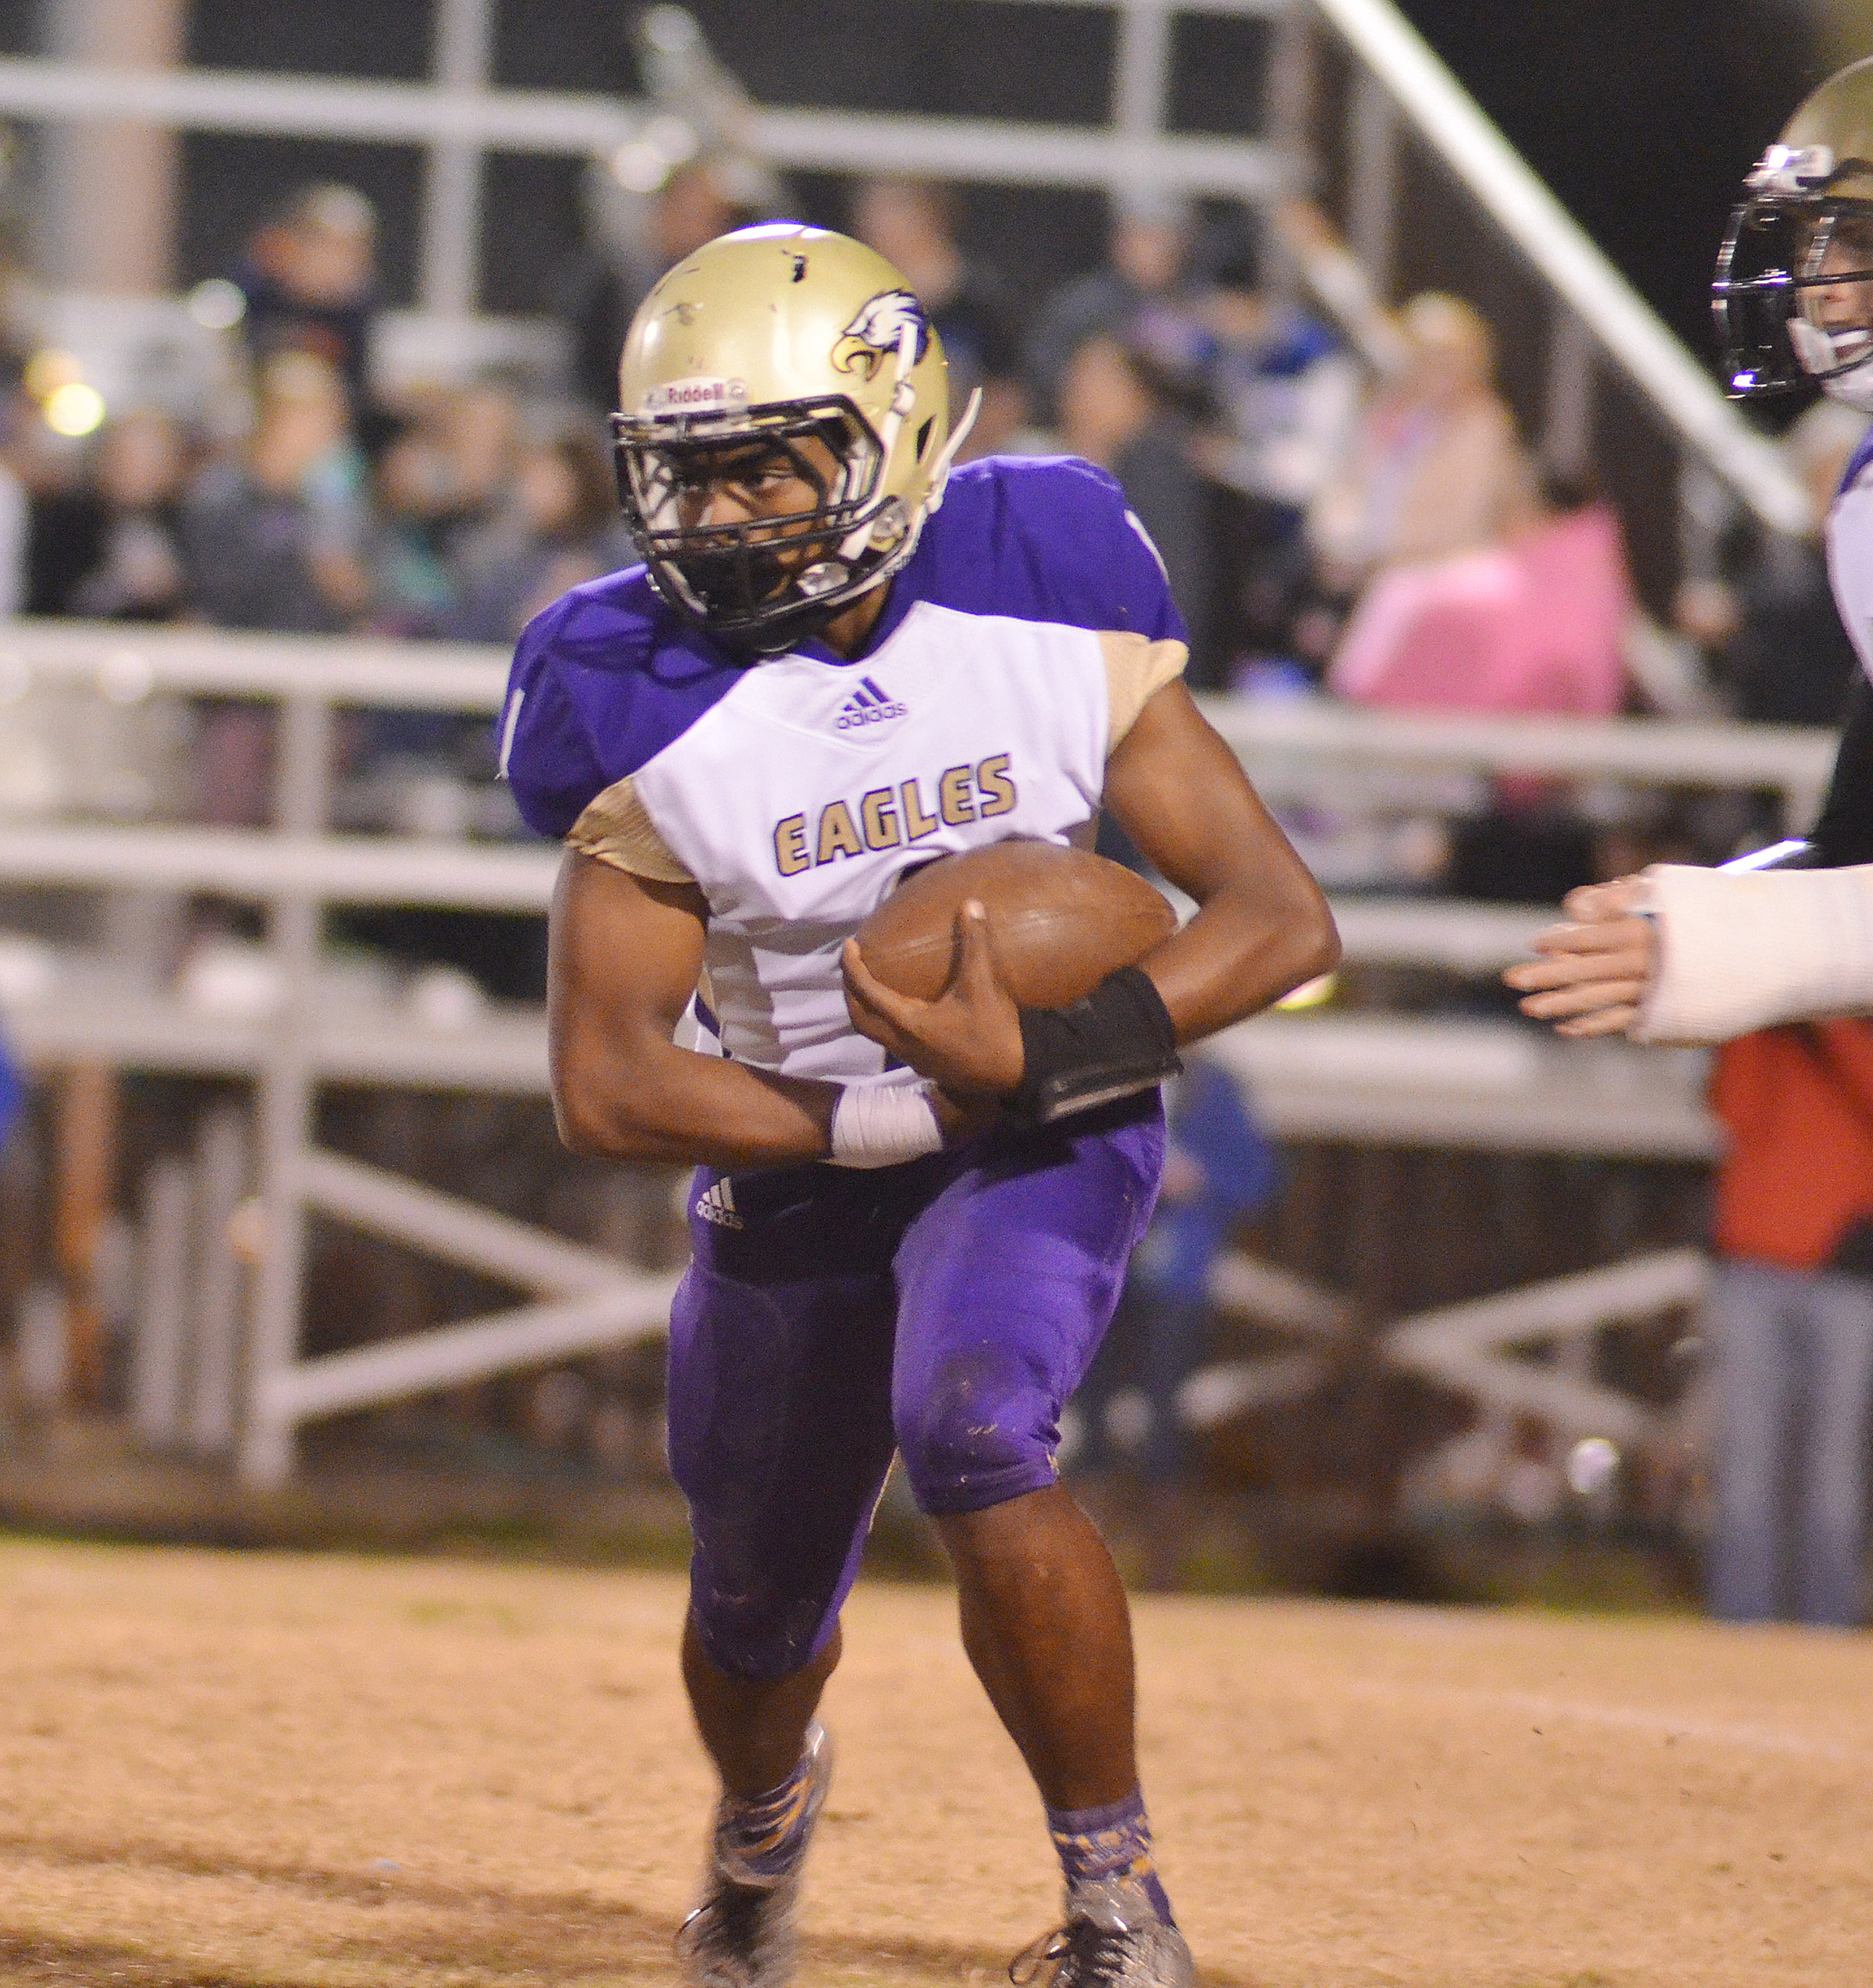 CHS junior Charlie Pettigrew runs the ball.